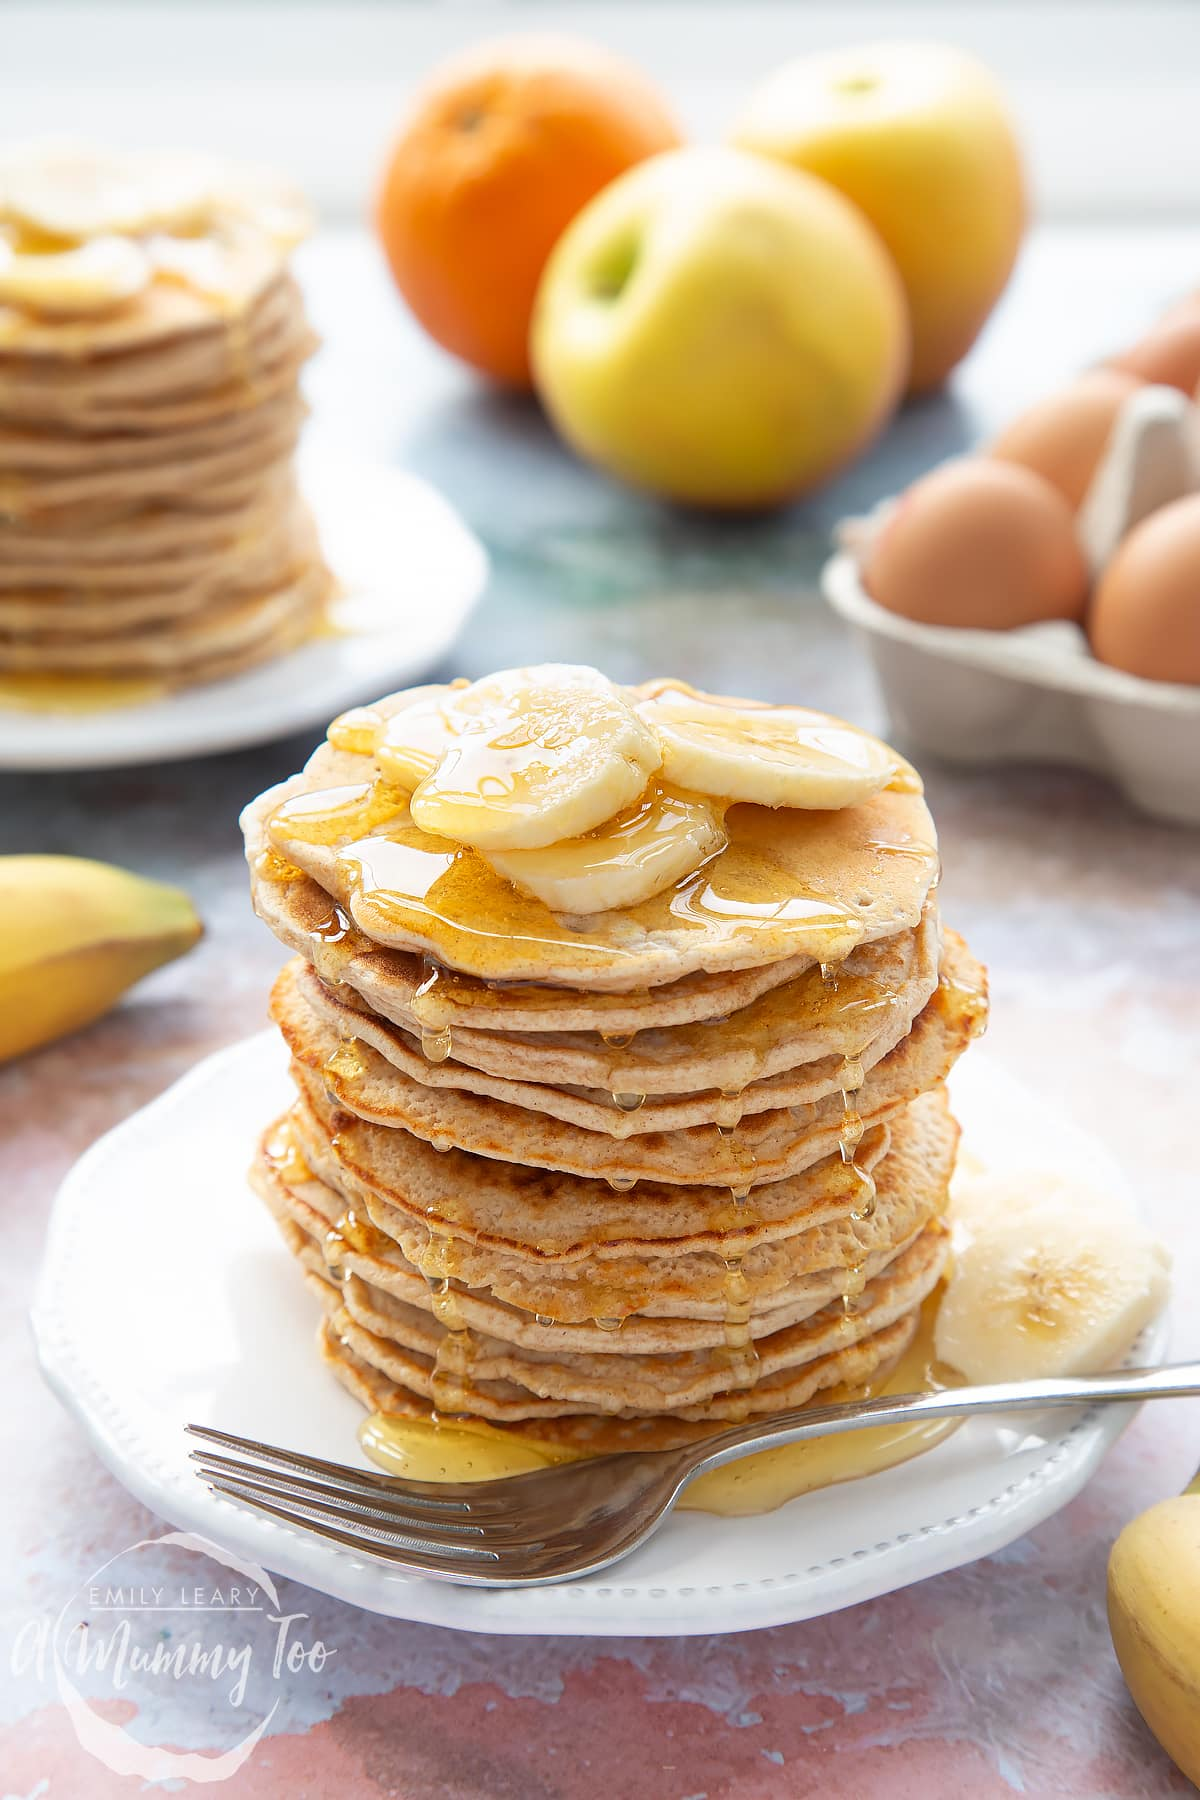 A stack of fluffy pancakes topped with syrup and banana on a white plate and fork